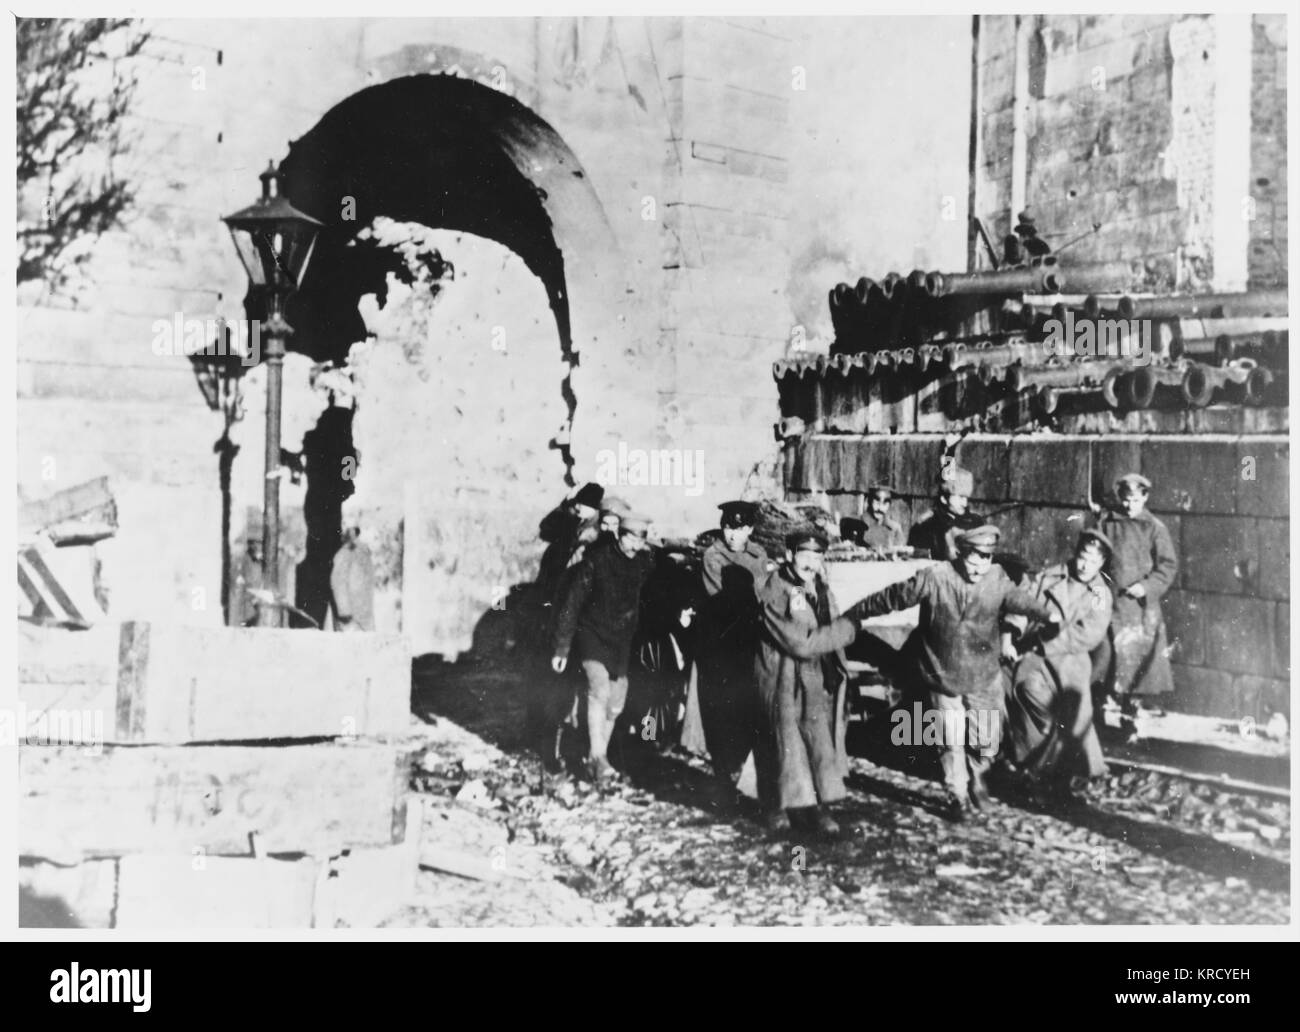 After a long battle, the  Moscow Kremlin finally falls  to the Bolsheviks.        Date: 2 November 1917 - Stock Image